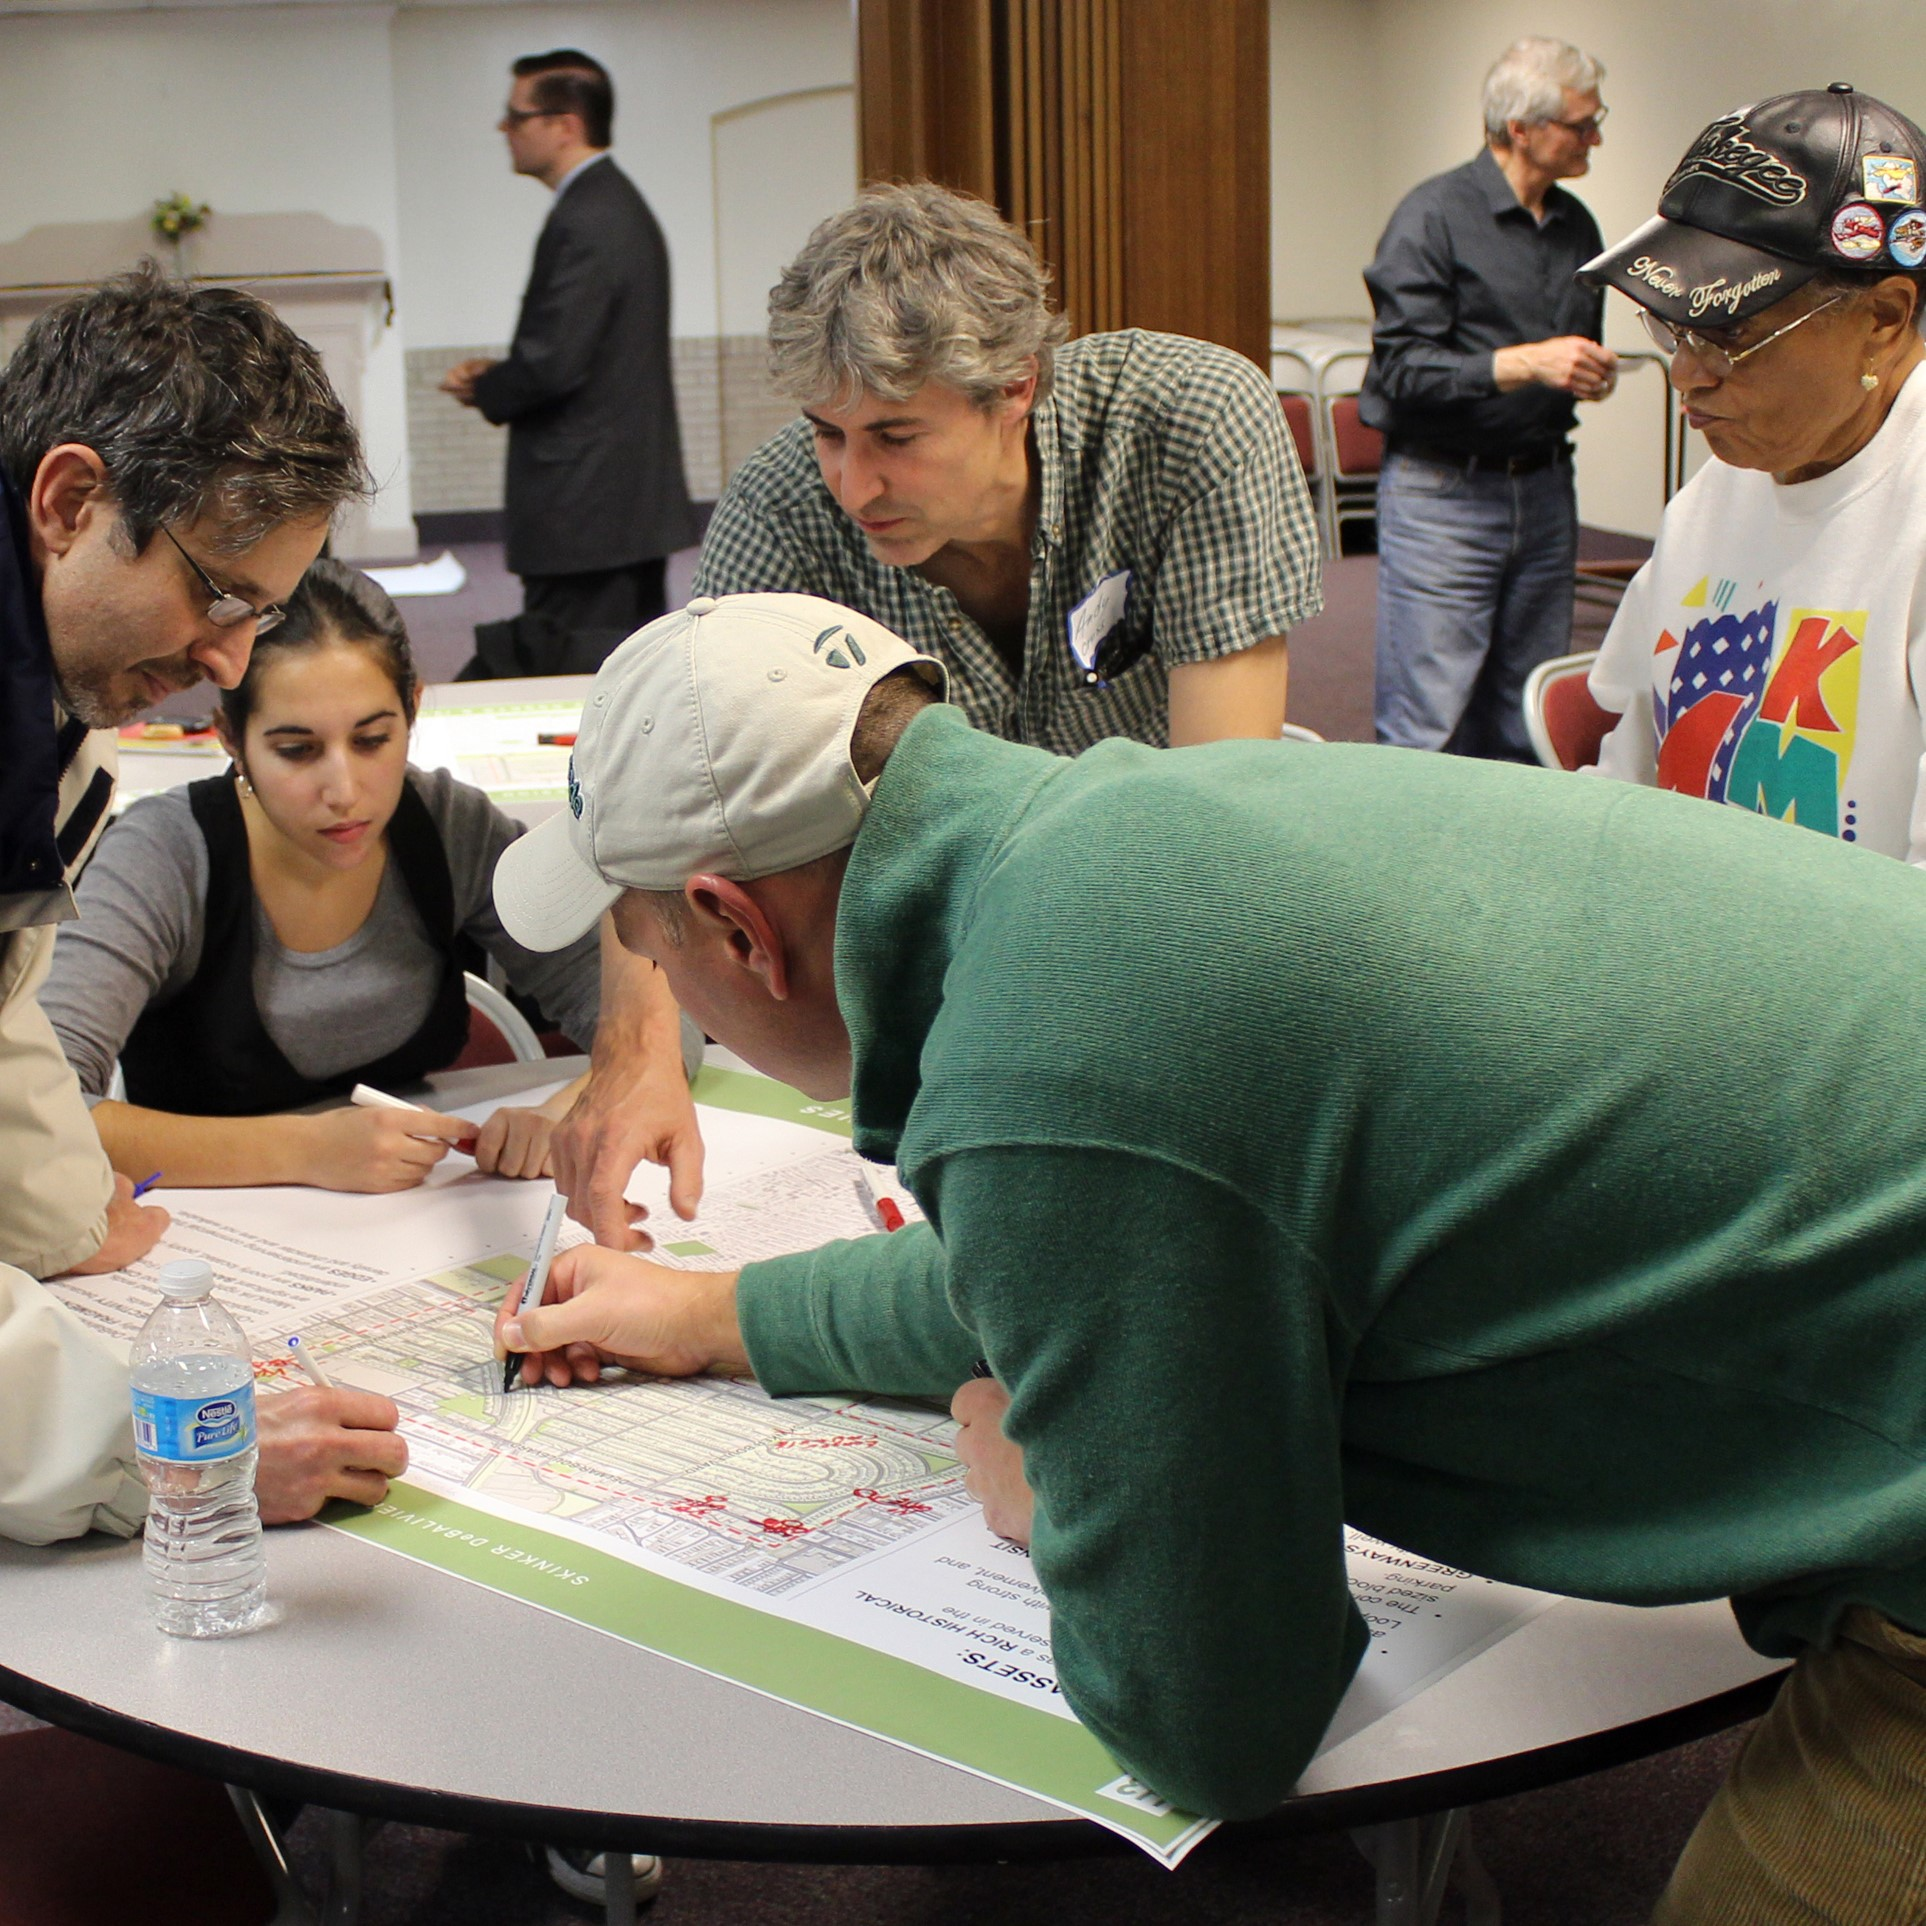 Community members make plans for their neighborhood. Med and women are standing around a table looking at a map.